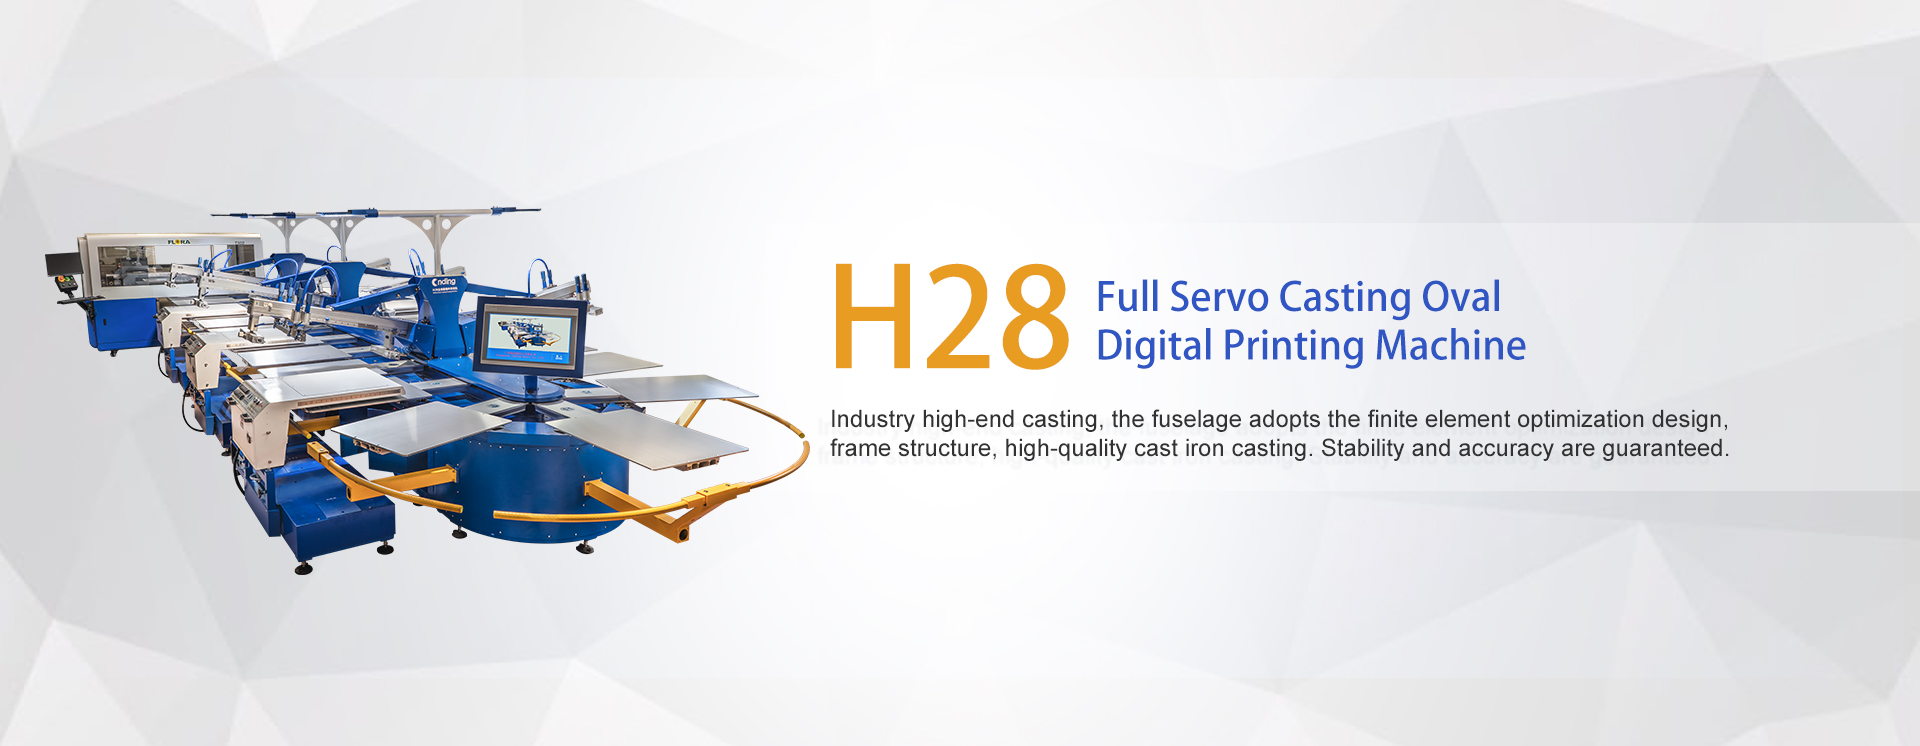 H28 Full Servo Casting Oval + Digital Printing Machine